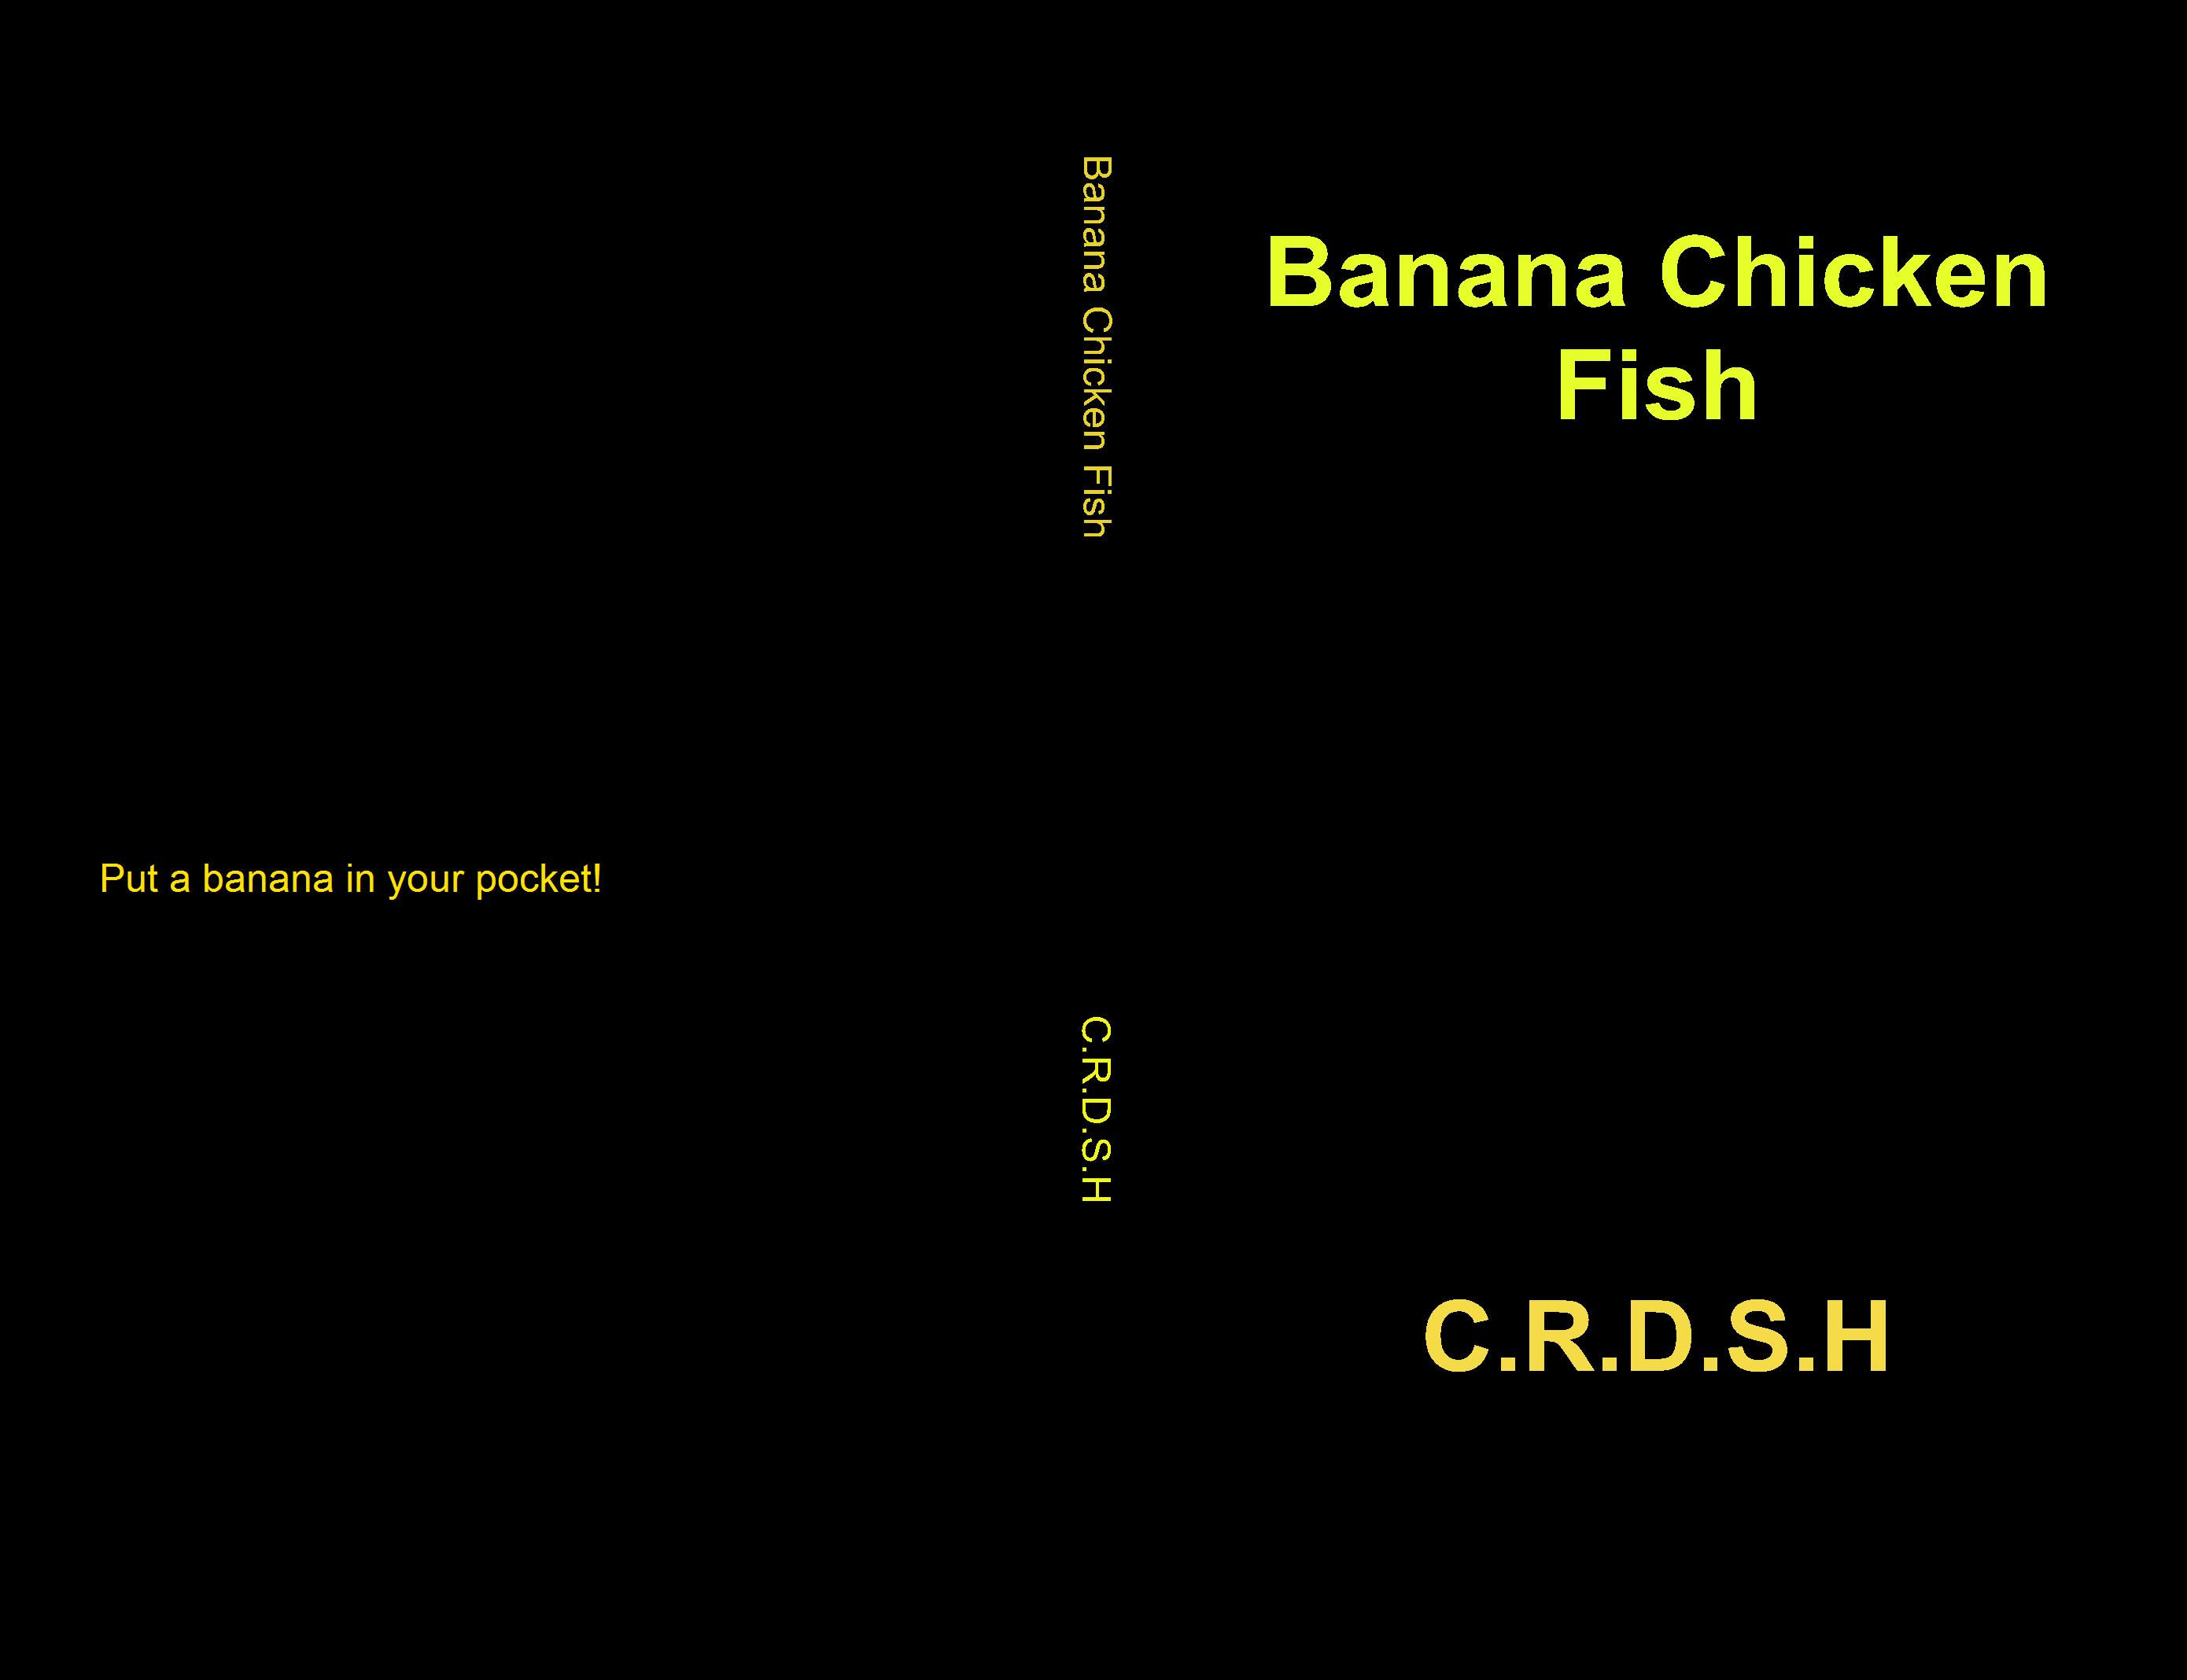 Banana Chicken Fish cover image